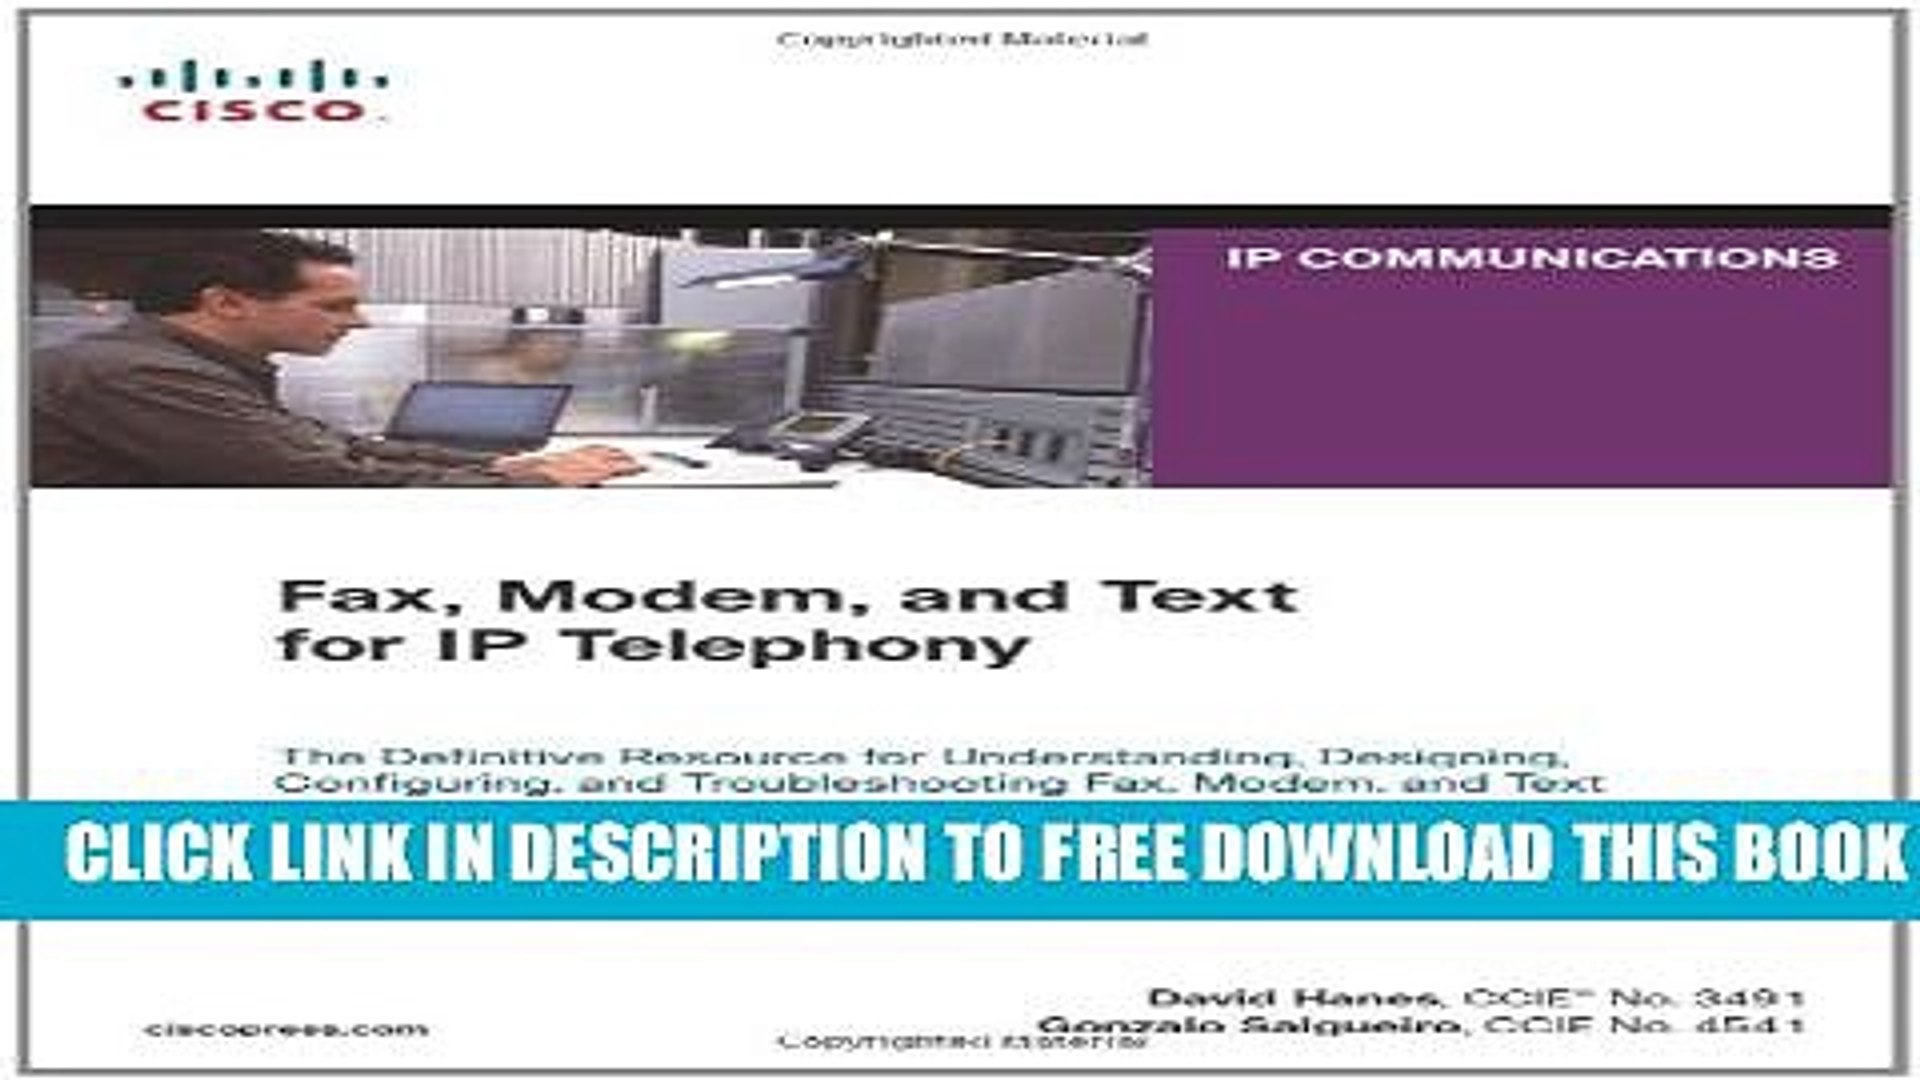 The road to ip telephony: how Cisco systems migrated from PBX to IP telephony